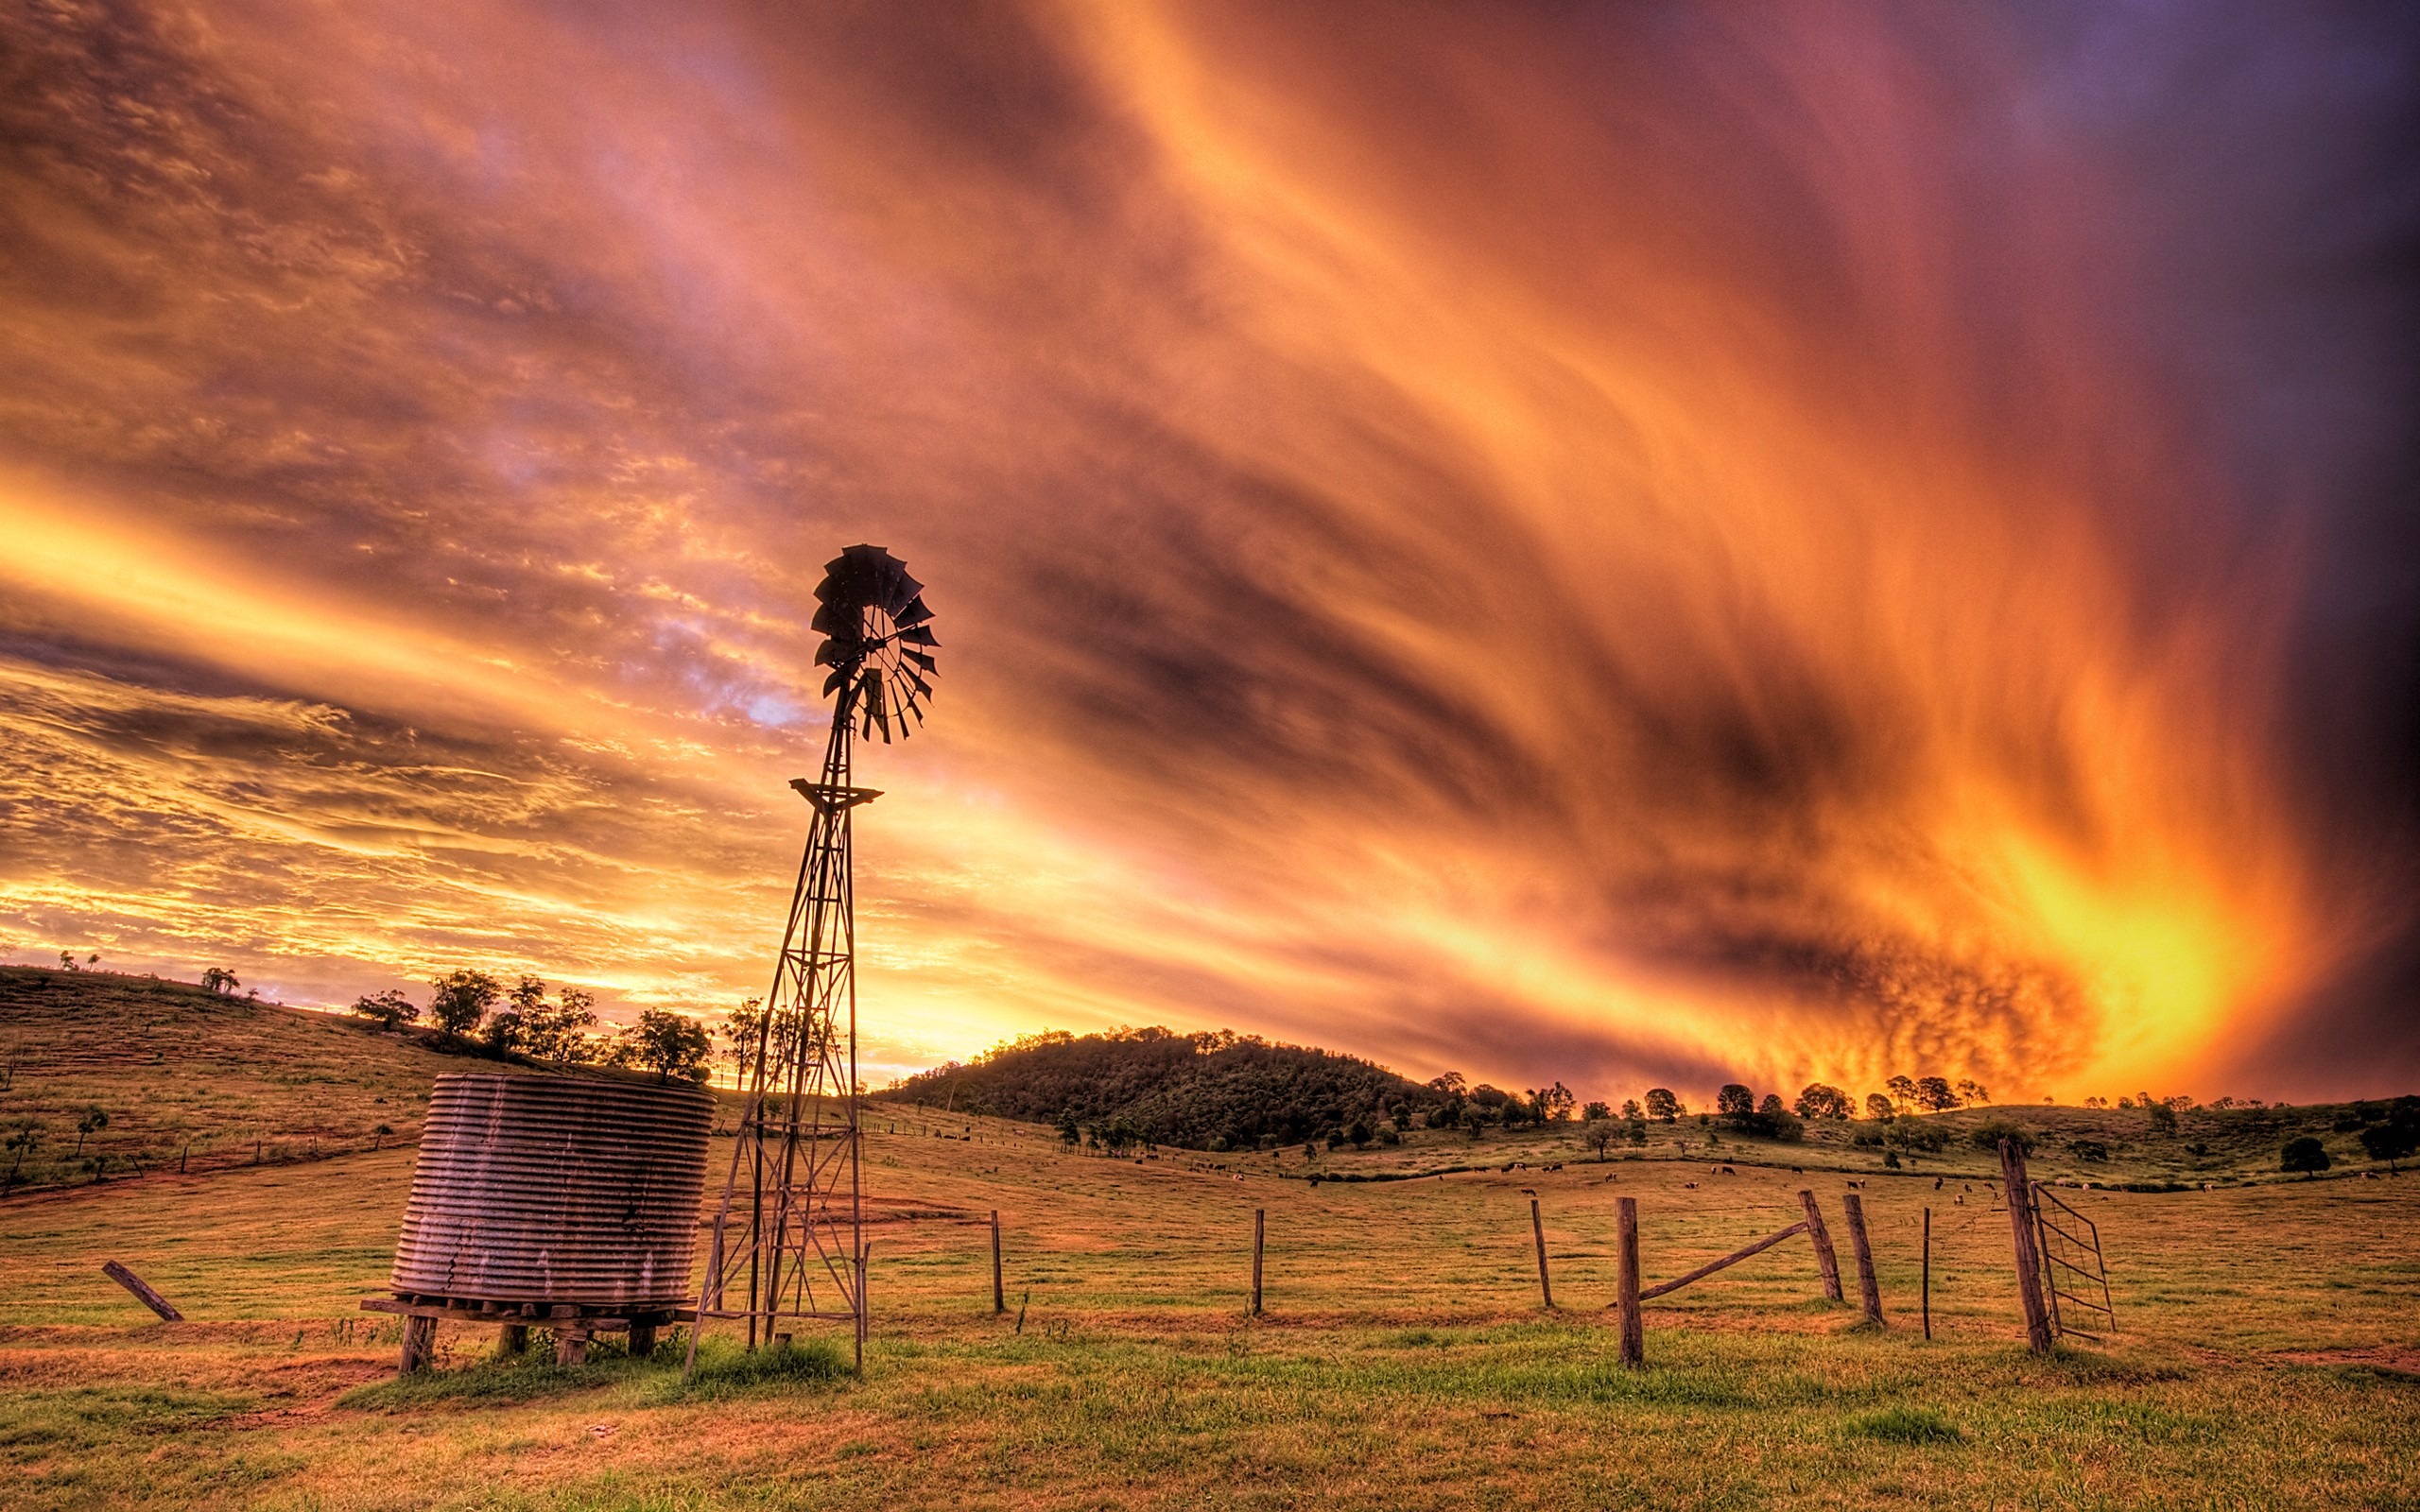 HD Country Music Wallpapers 2560x1600